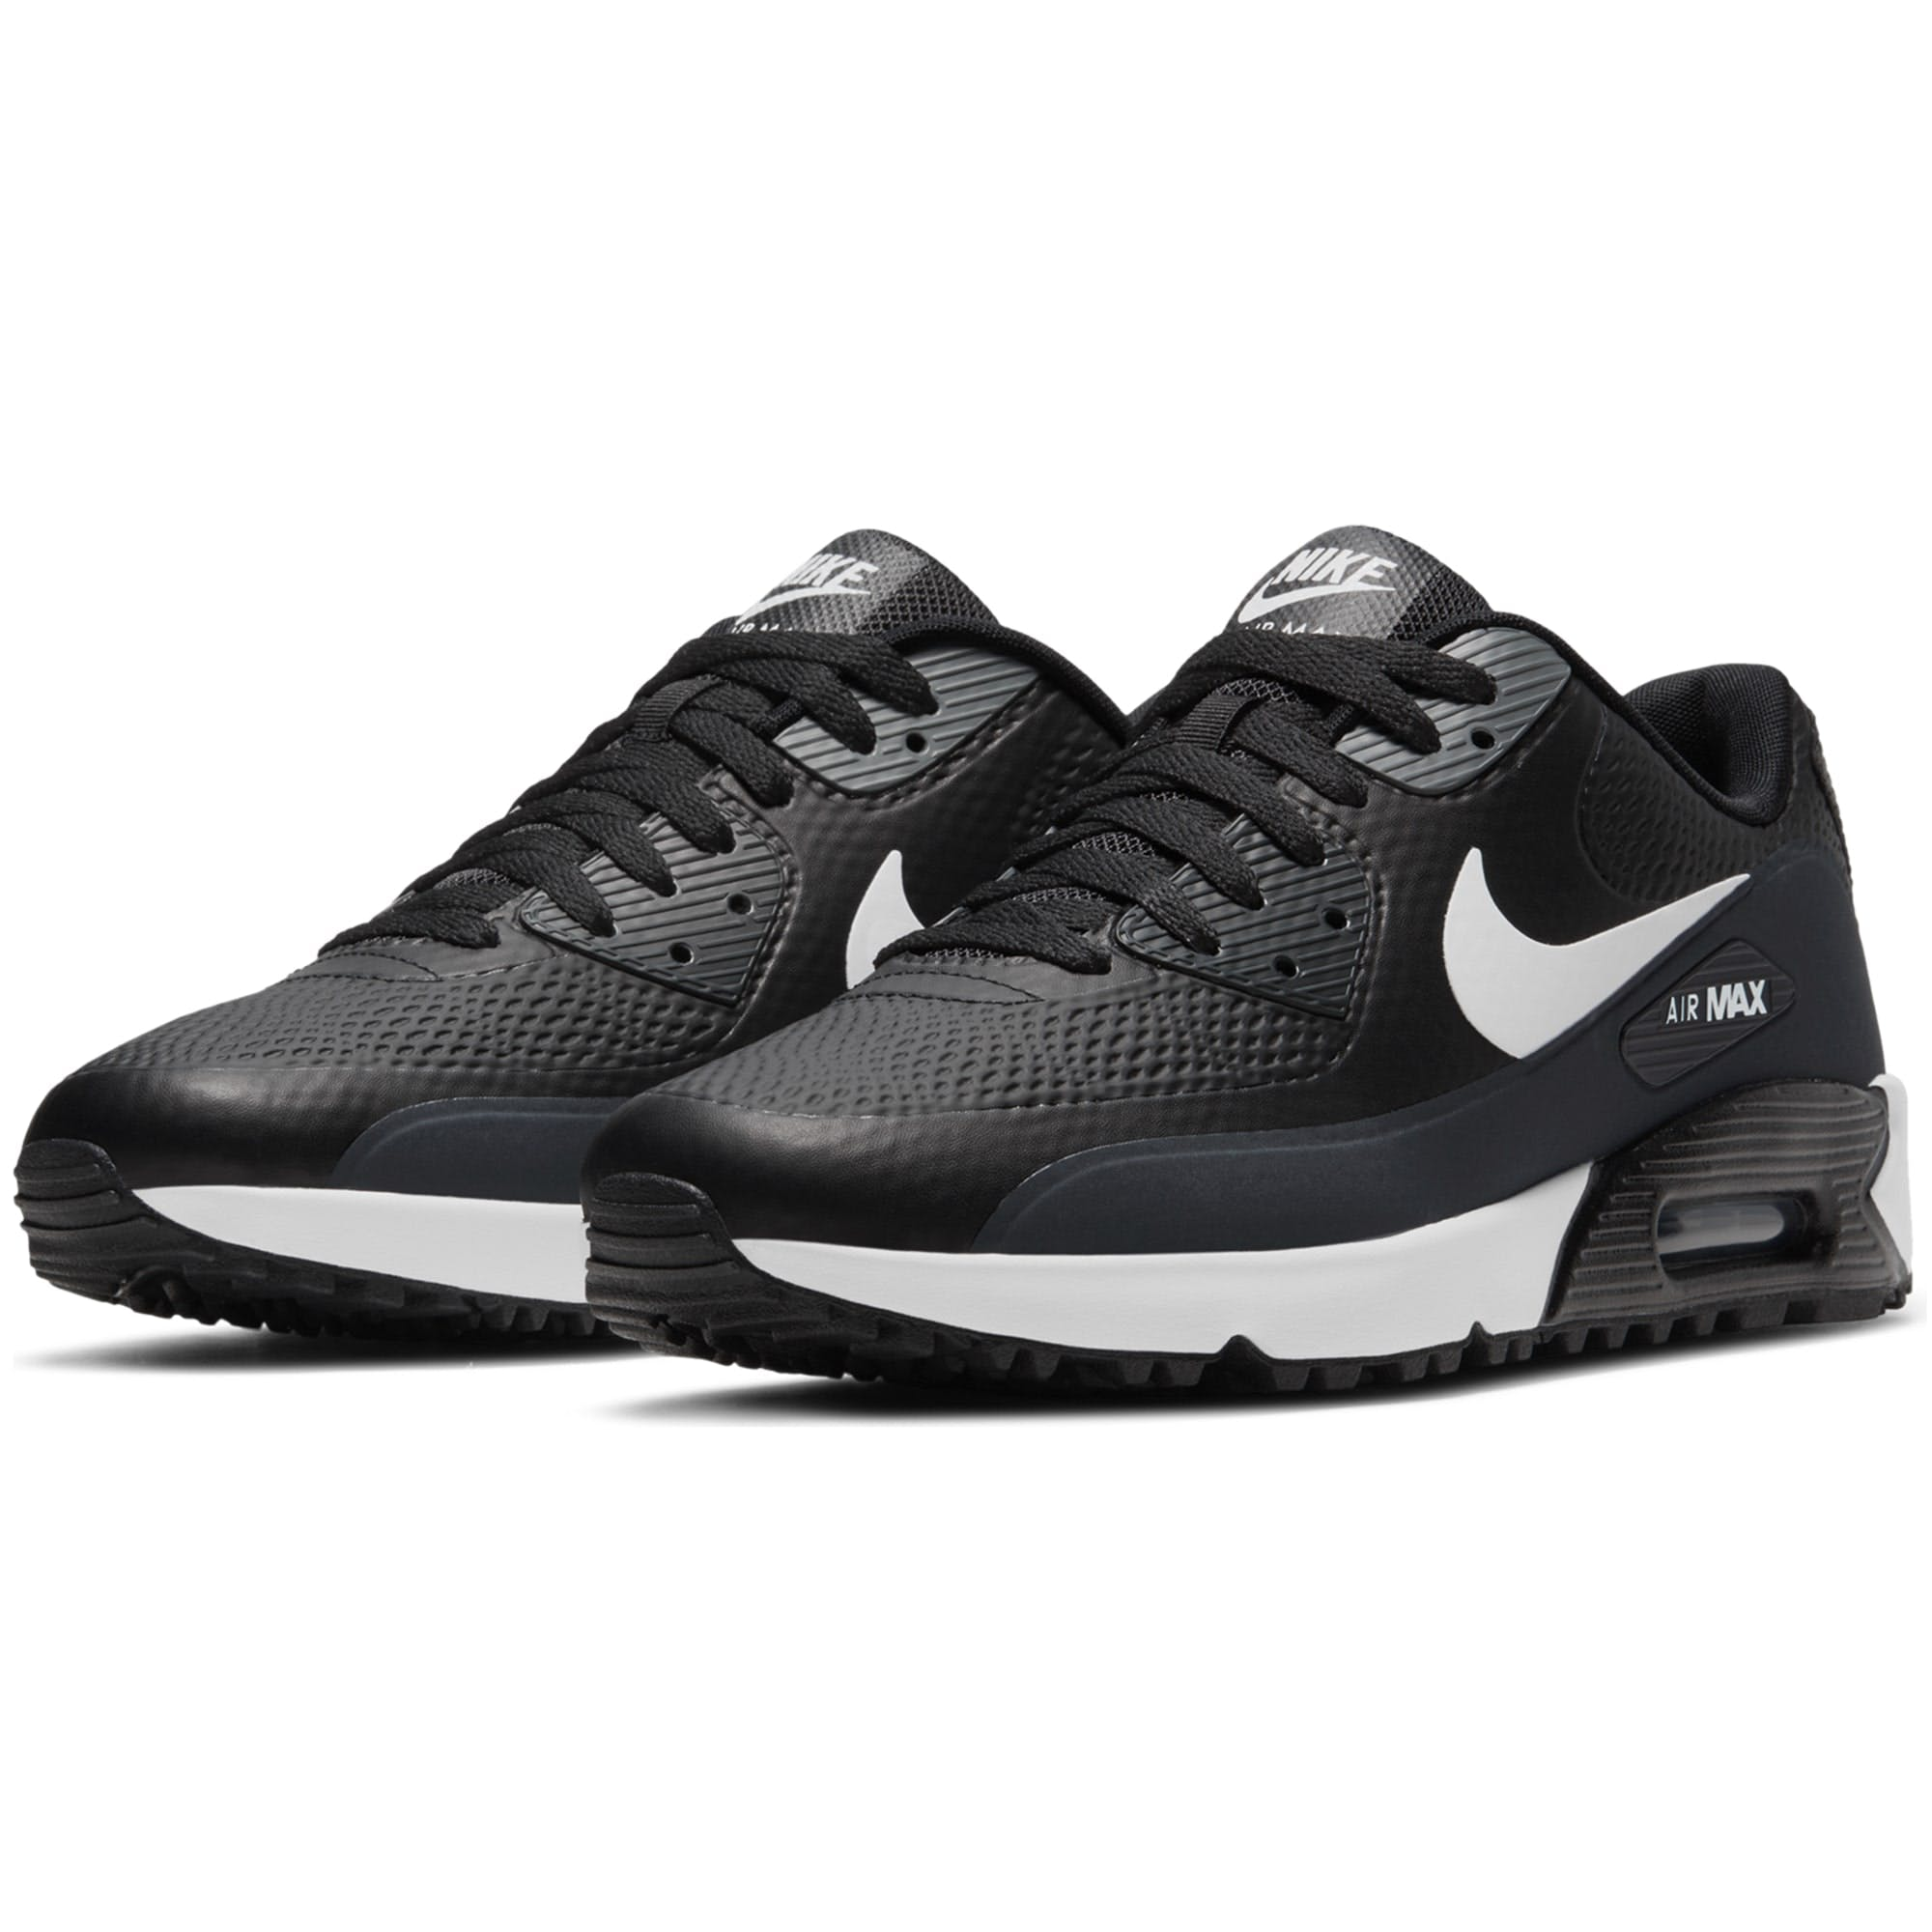 Air Max 90G Black/White/Anthracite Cool Grey - SS21